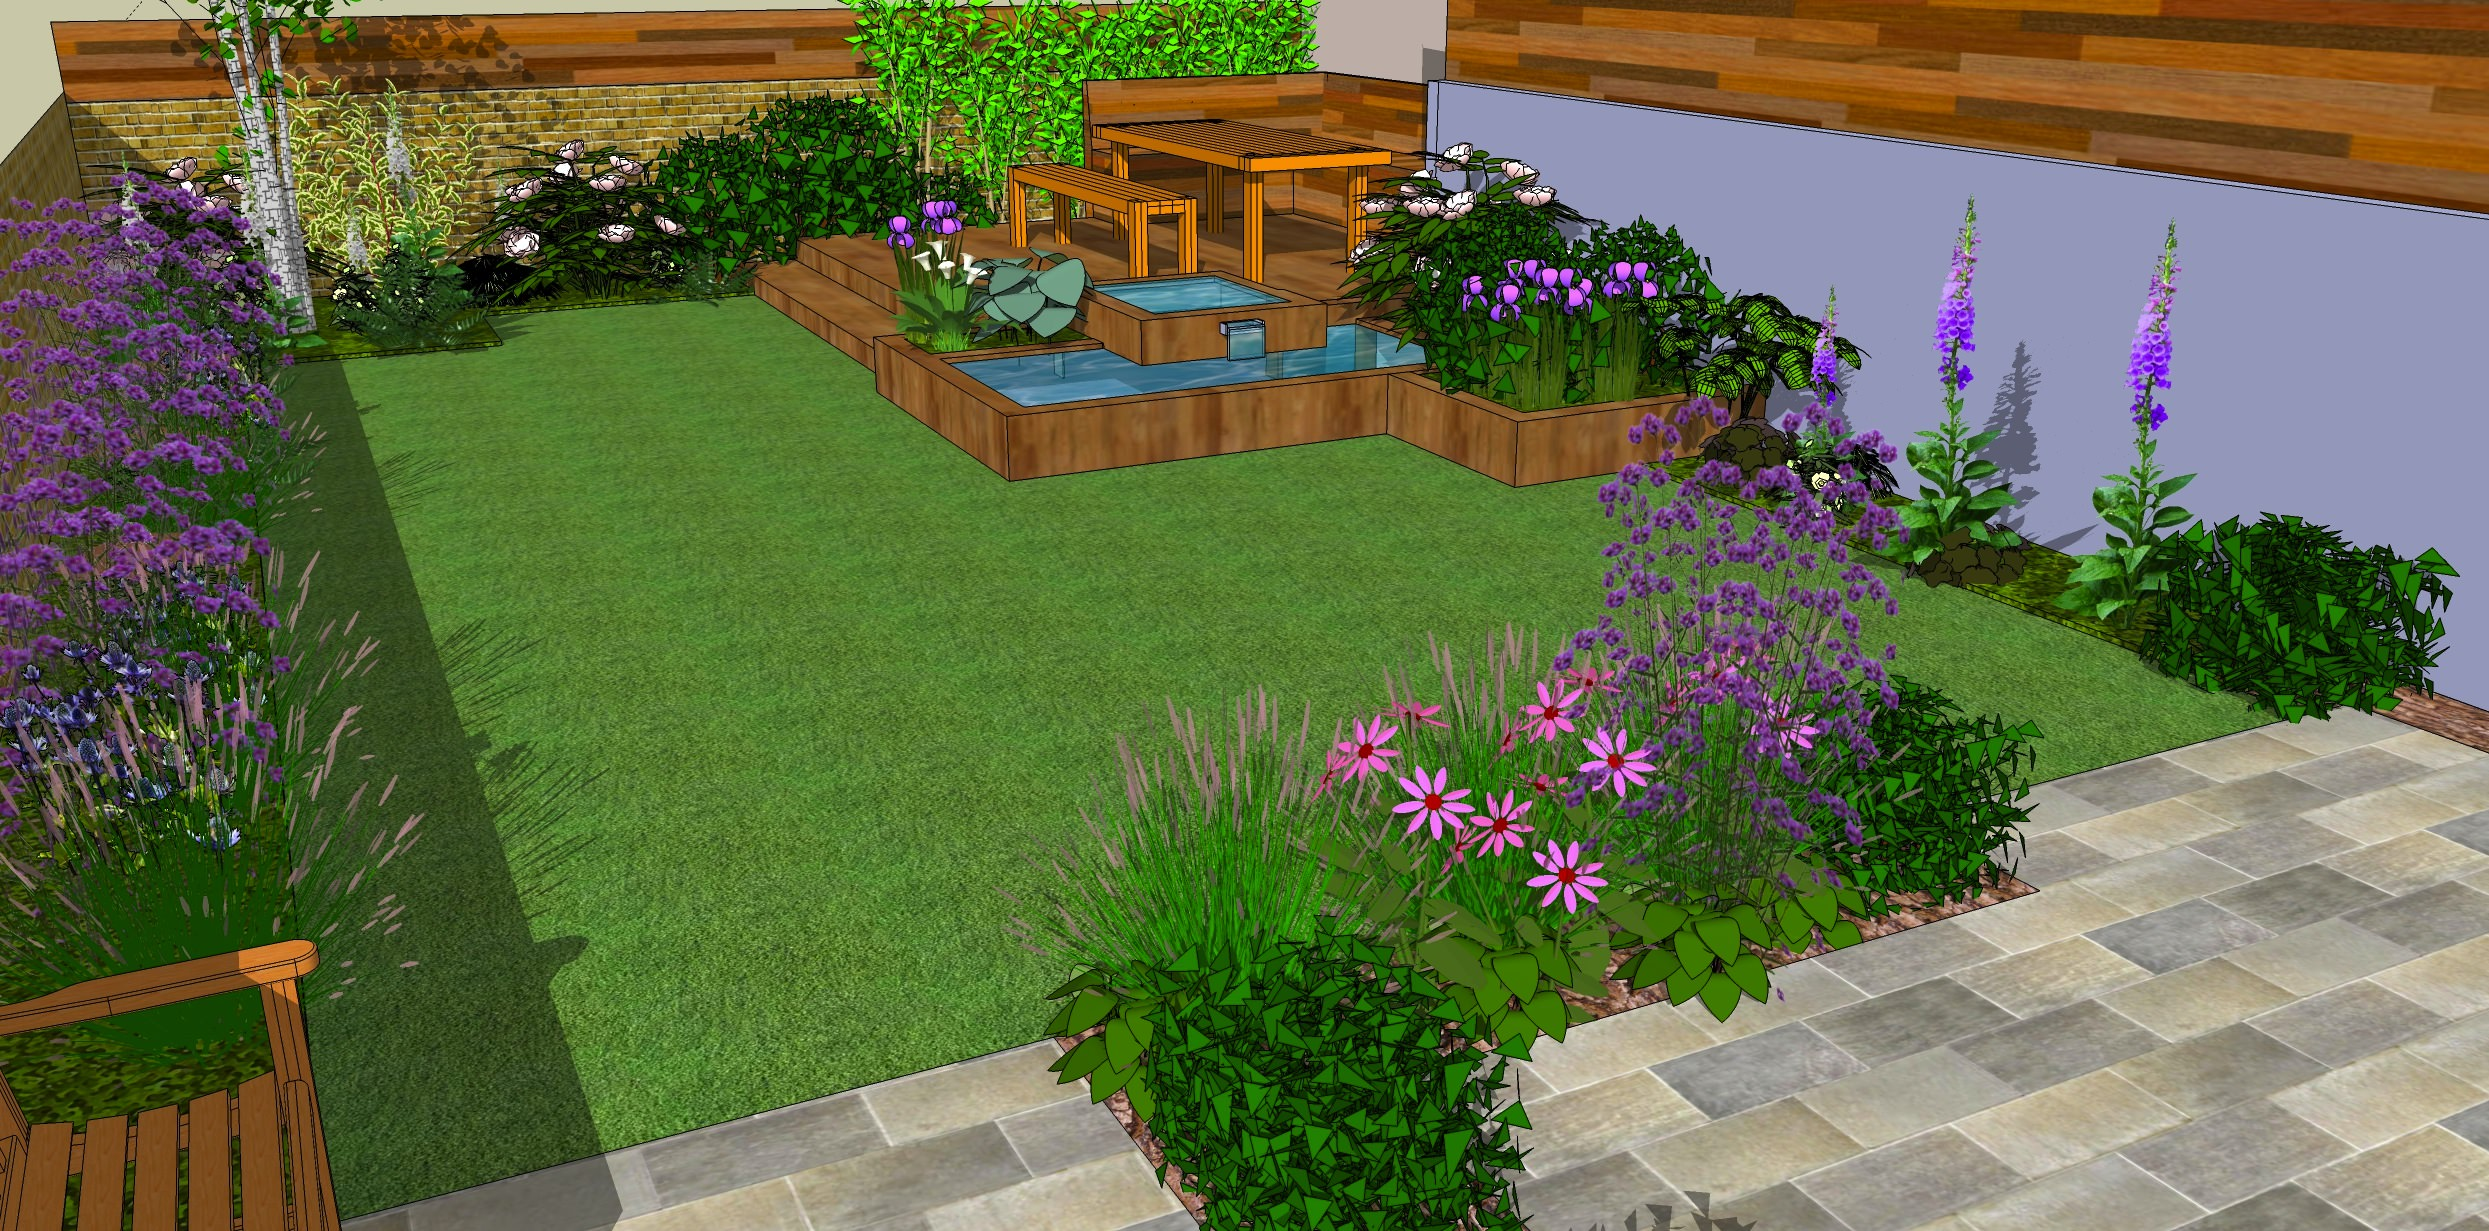 Low maintenance garden designs garden club london for Easy garden design ideas